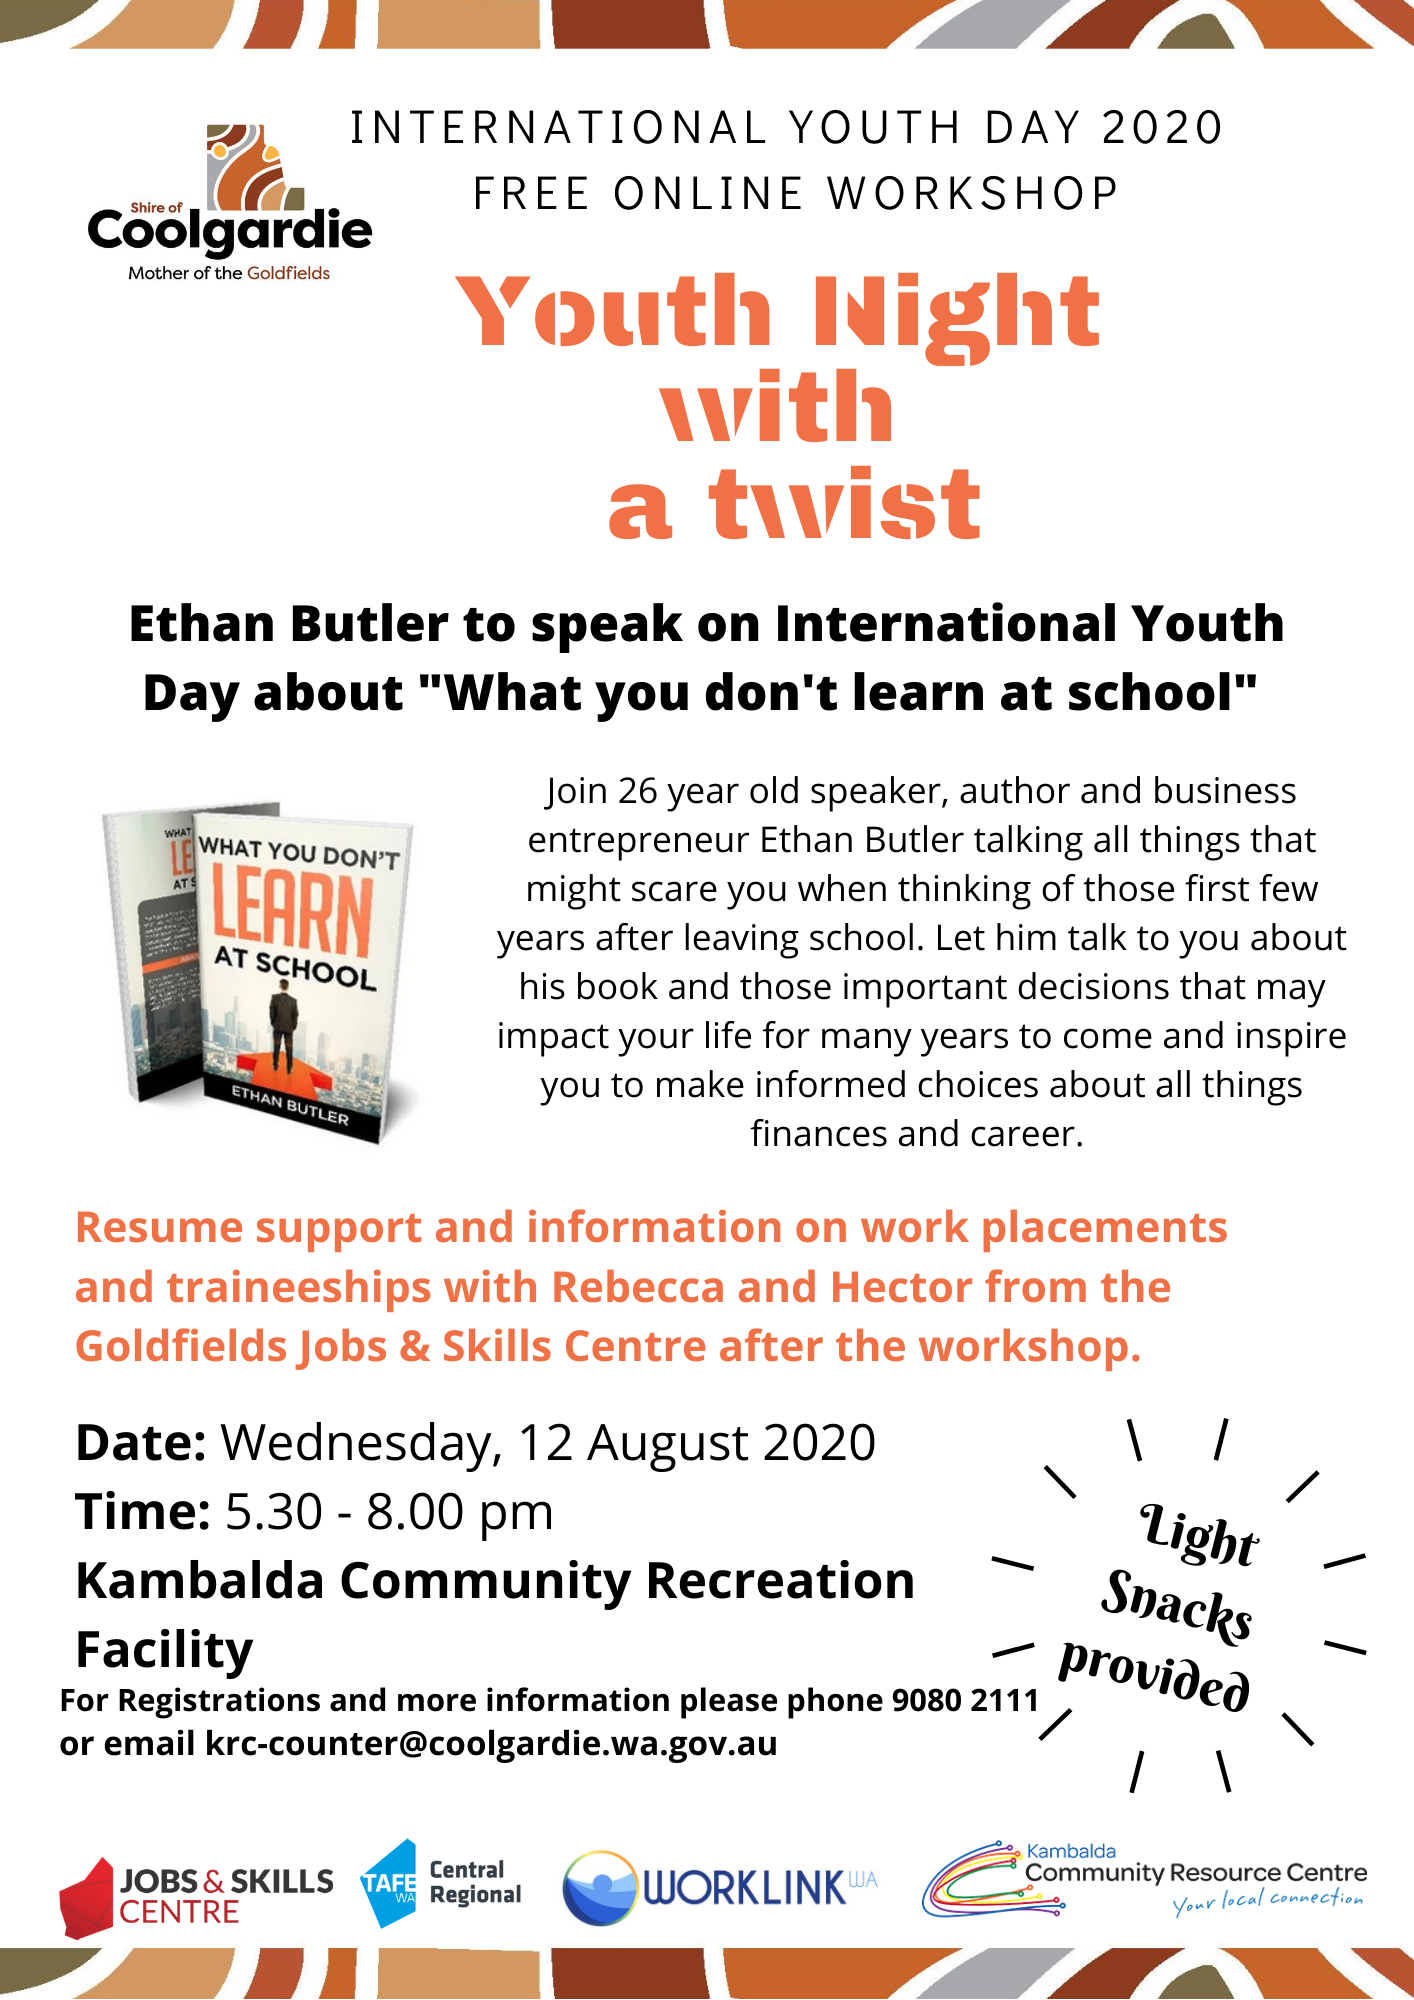 YOUTH NIGHT with a twist for International Youth Day